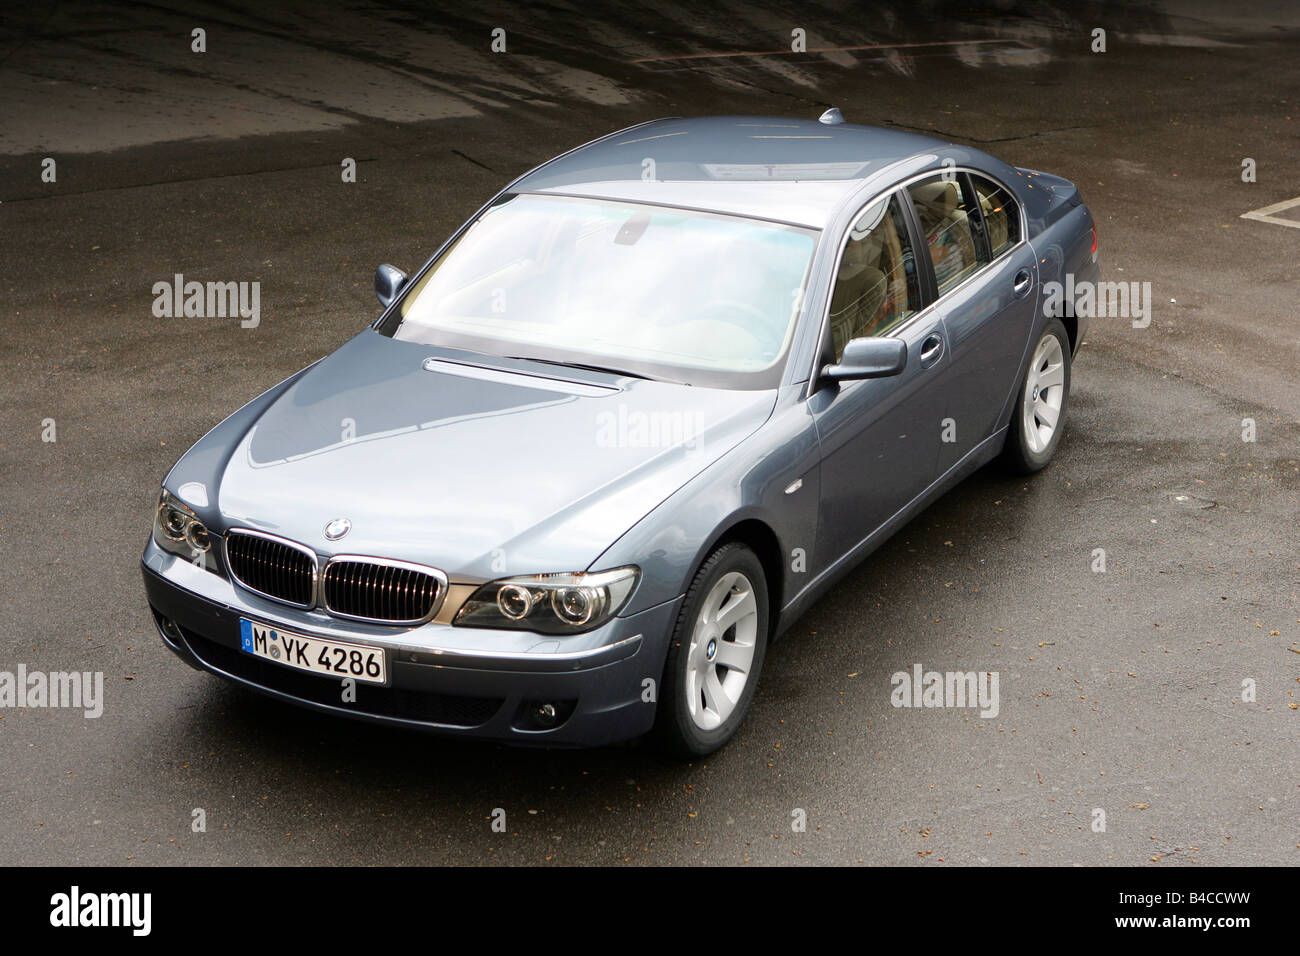 car bmw 745d luxury approx s model year 2005 anthracite stock rh alamy com BMW 6 Series BMW 8 Series